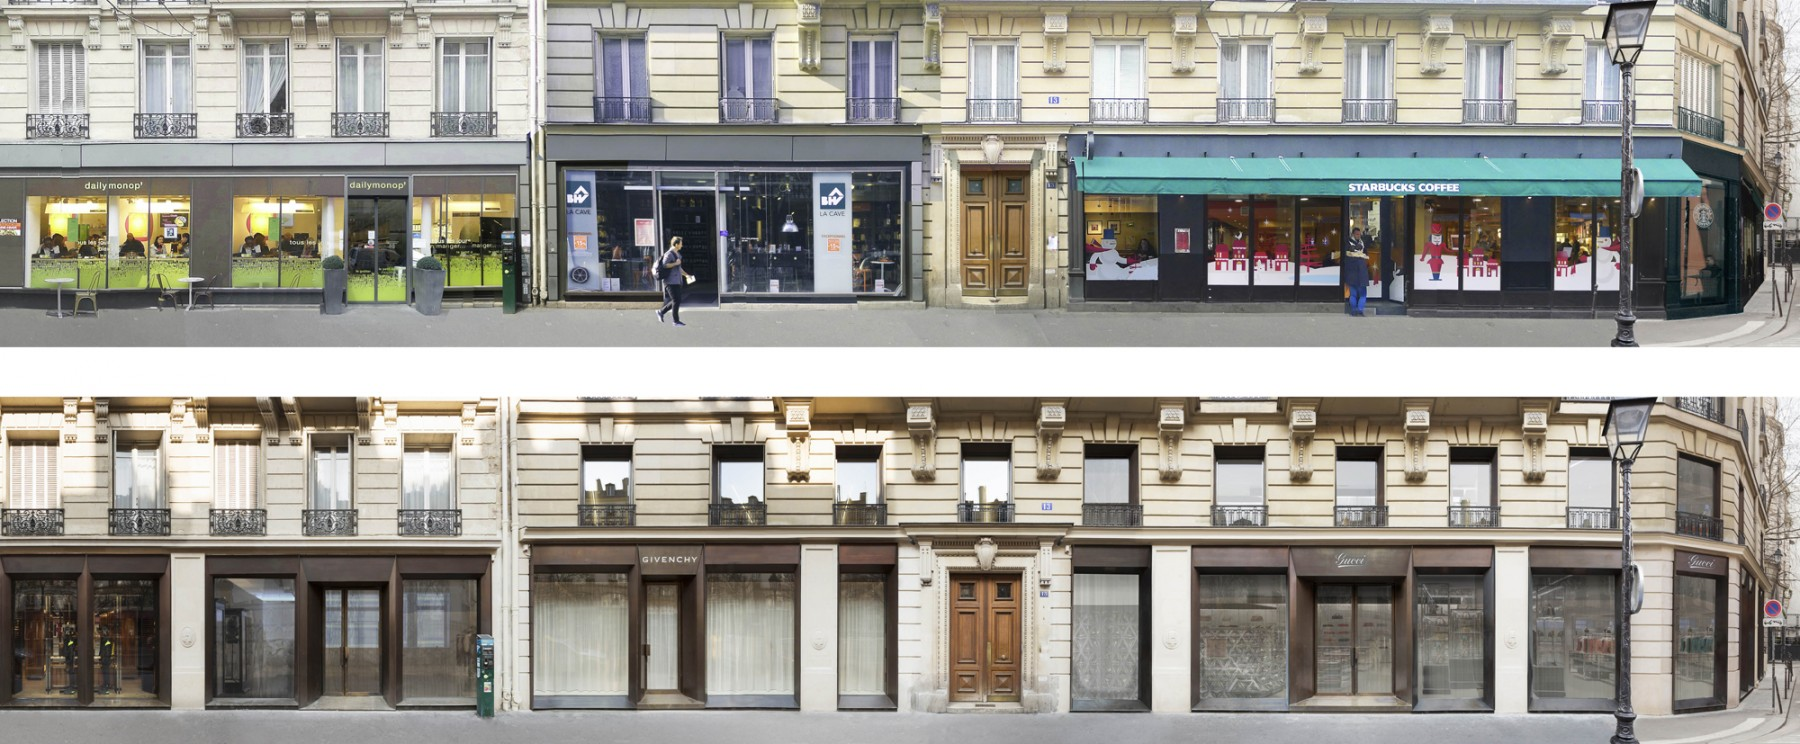 Jamie-Fobert-Architects-BHV-Rue-des-Archives-Paris-facades-luxury-retail-before-and-after